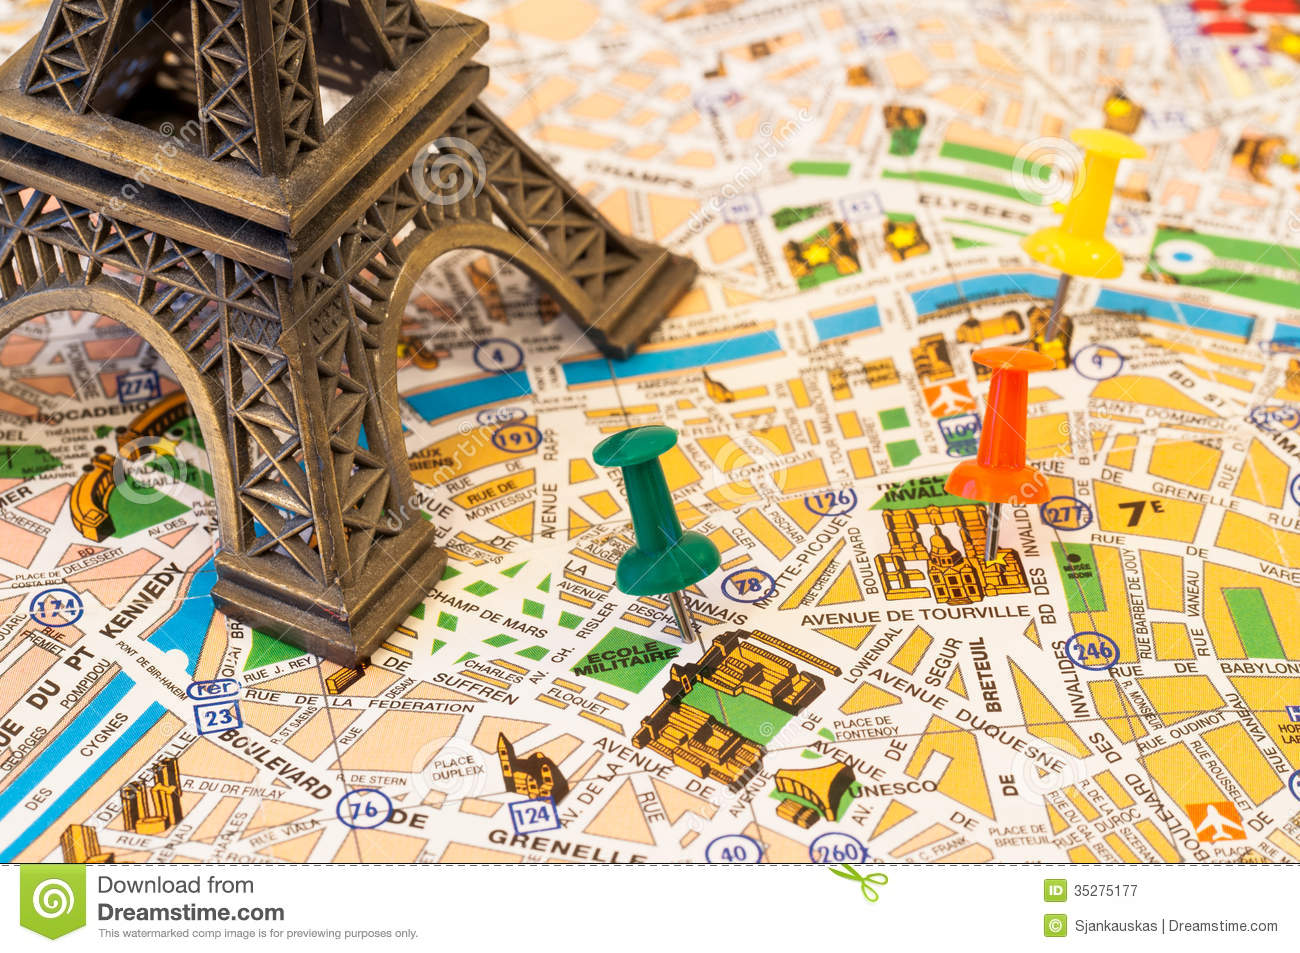 Paris map visiting places stock image Image of marking 35275177